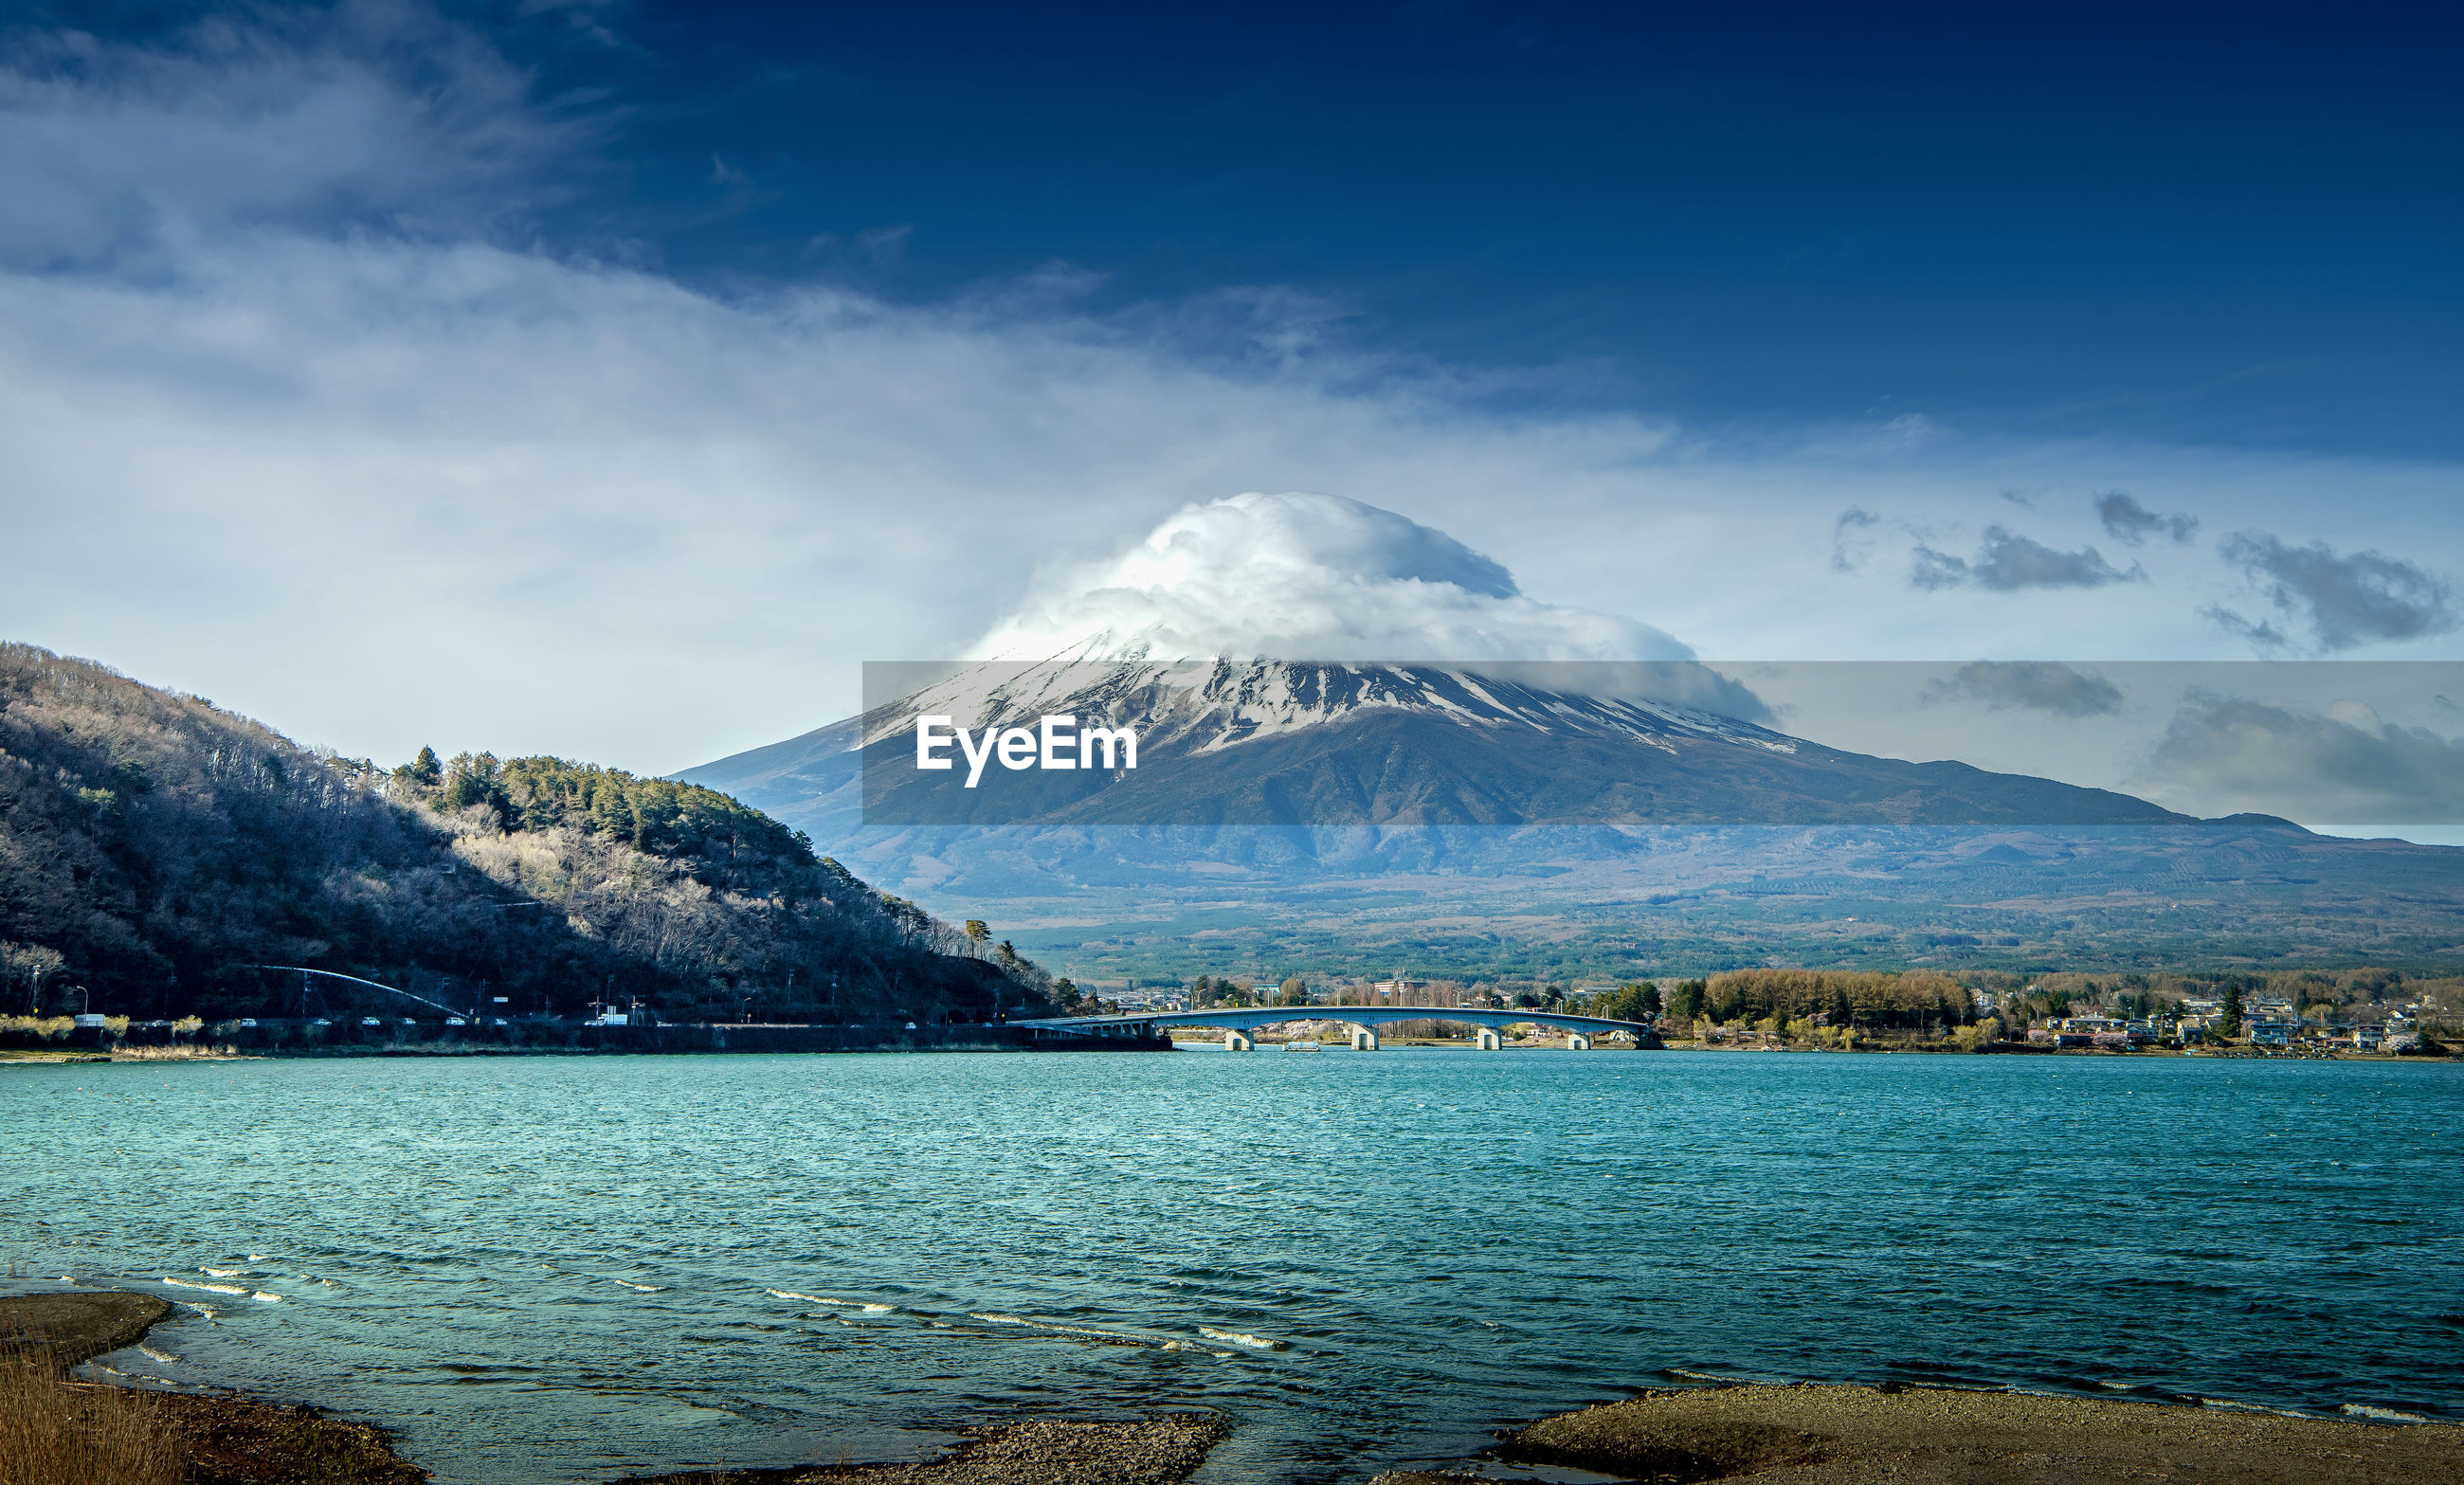 SCENIC VIEW OF SEA AND SNOWCAPPED MOUNTAIN AGAINST SKY